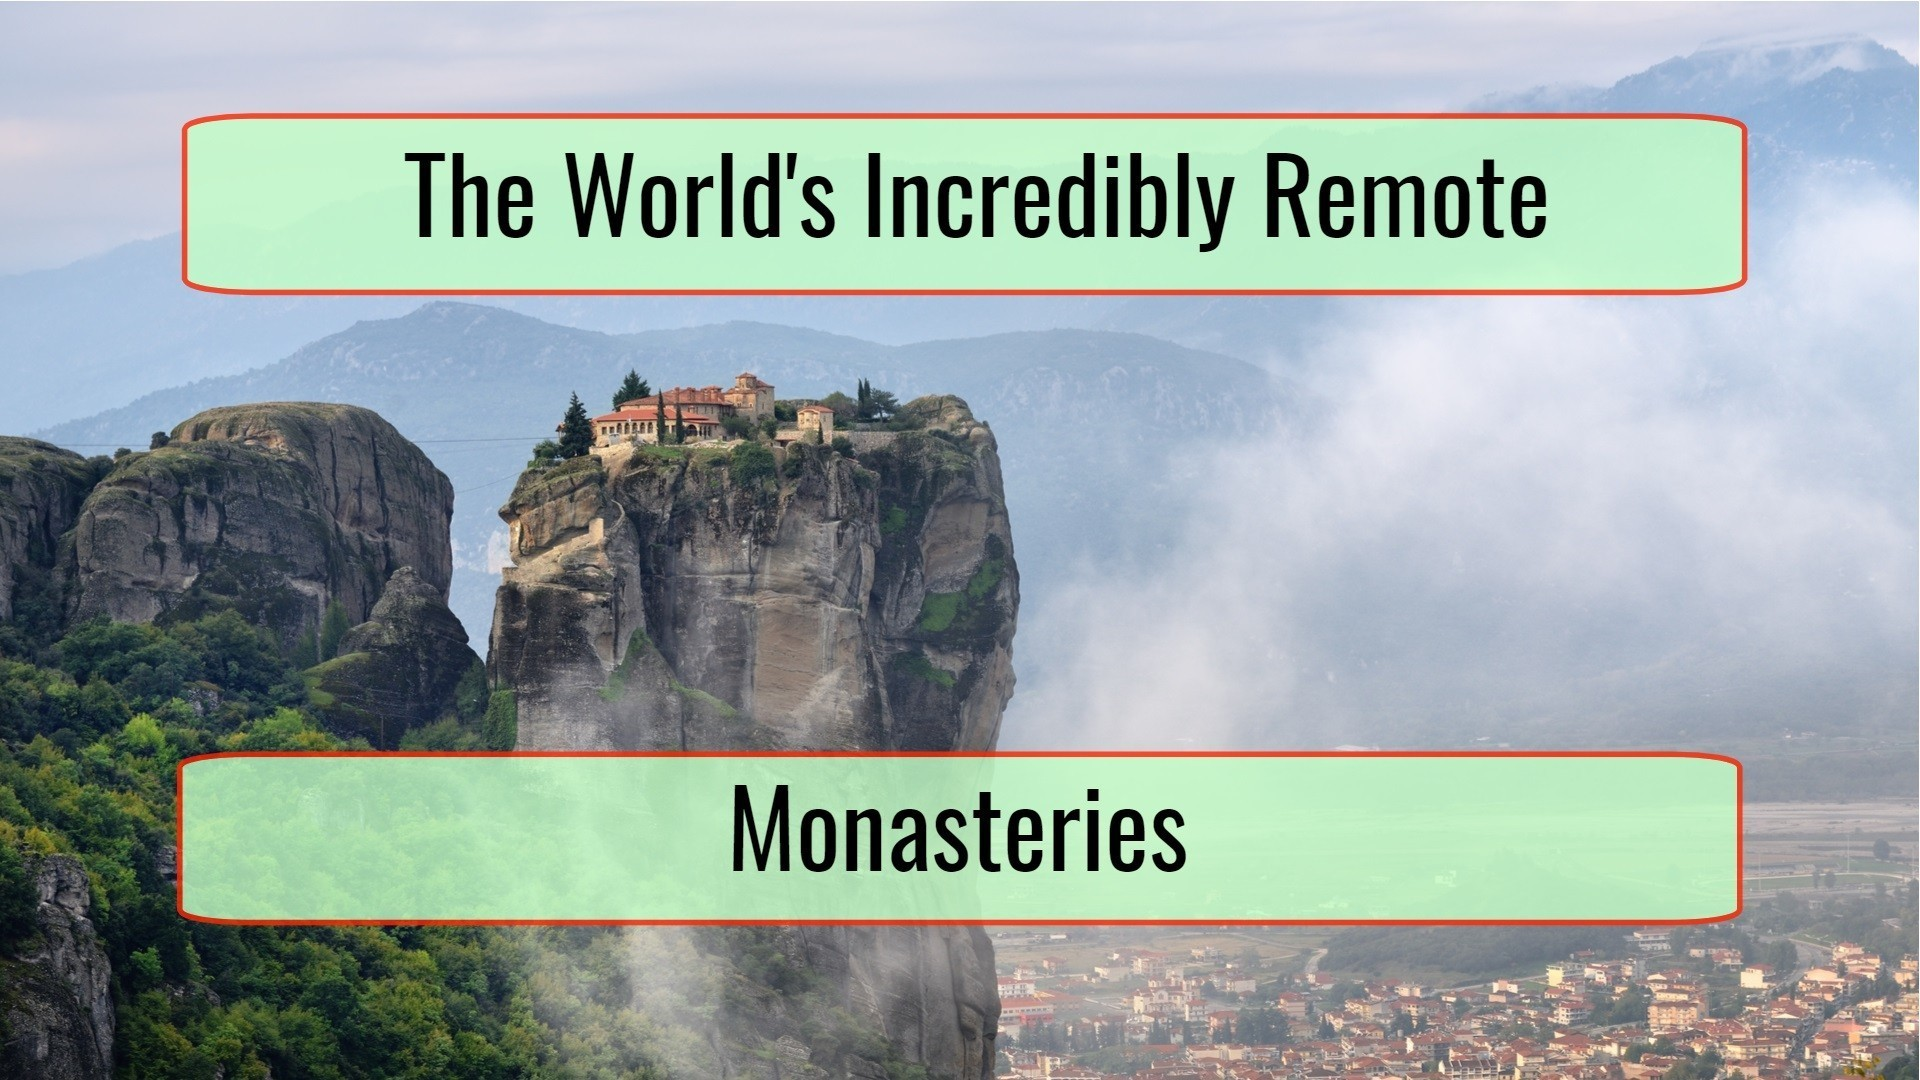 The World's Incredibly Inaccessible Monasteries